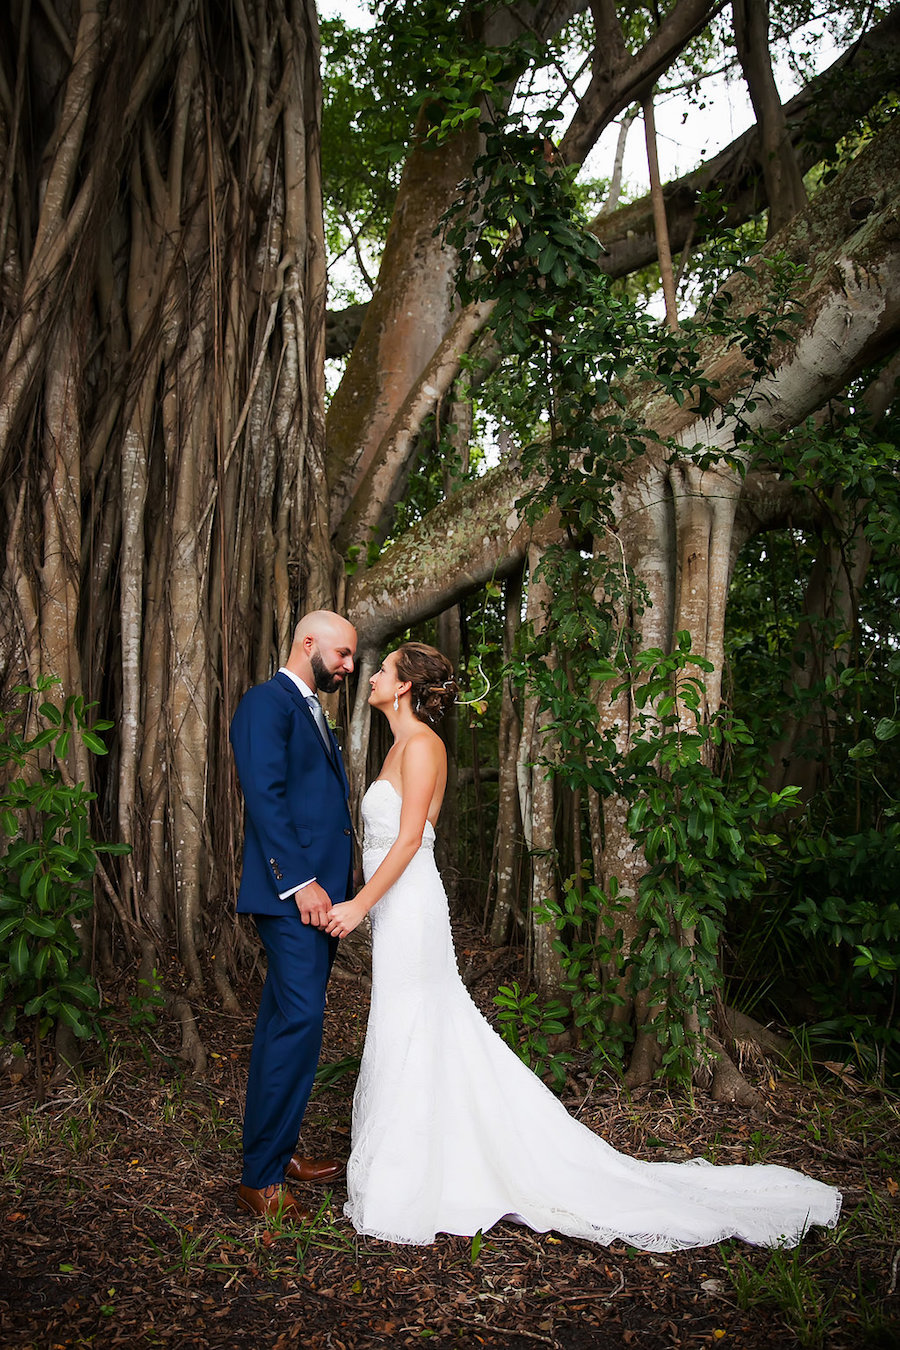 Outdoor, Sarasota Bride and Groom First Look Wedding Portrait   Tampa Bay Photographer Limelight Photography